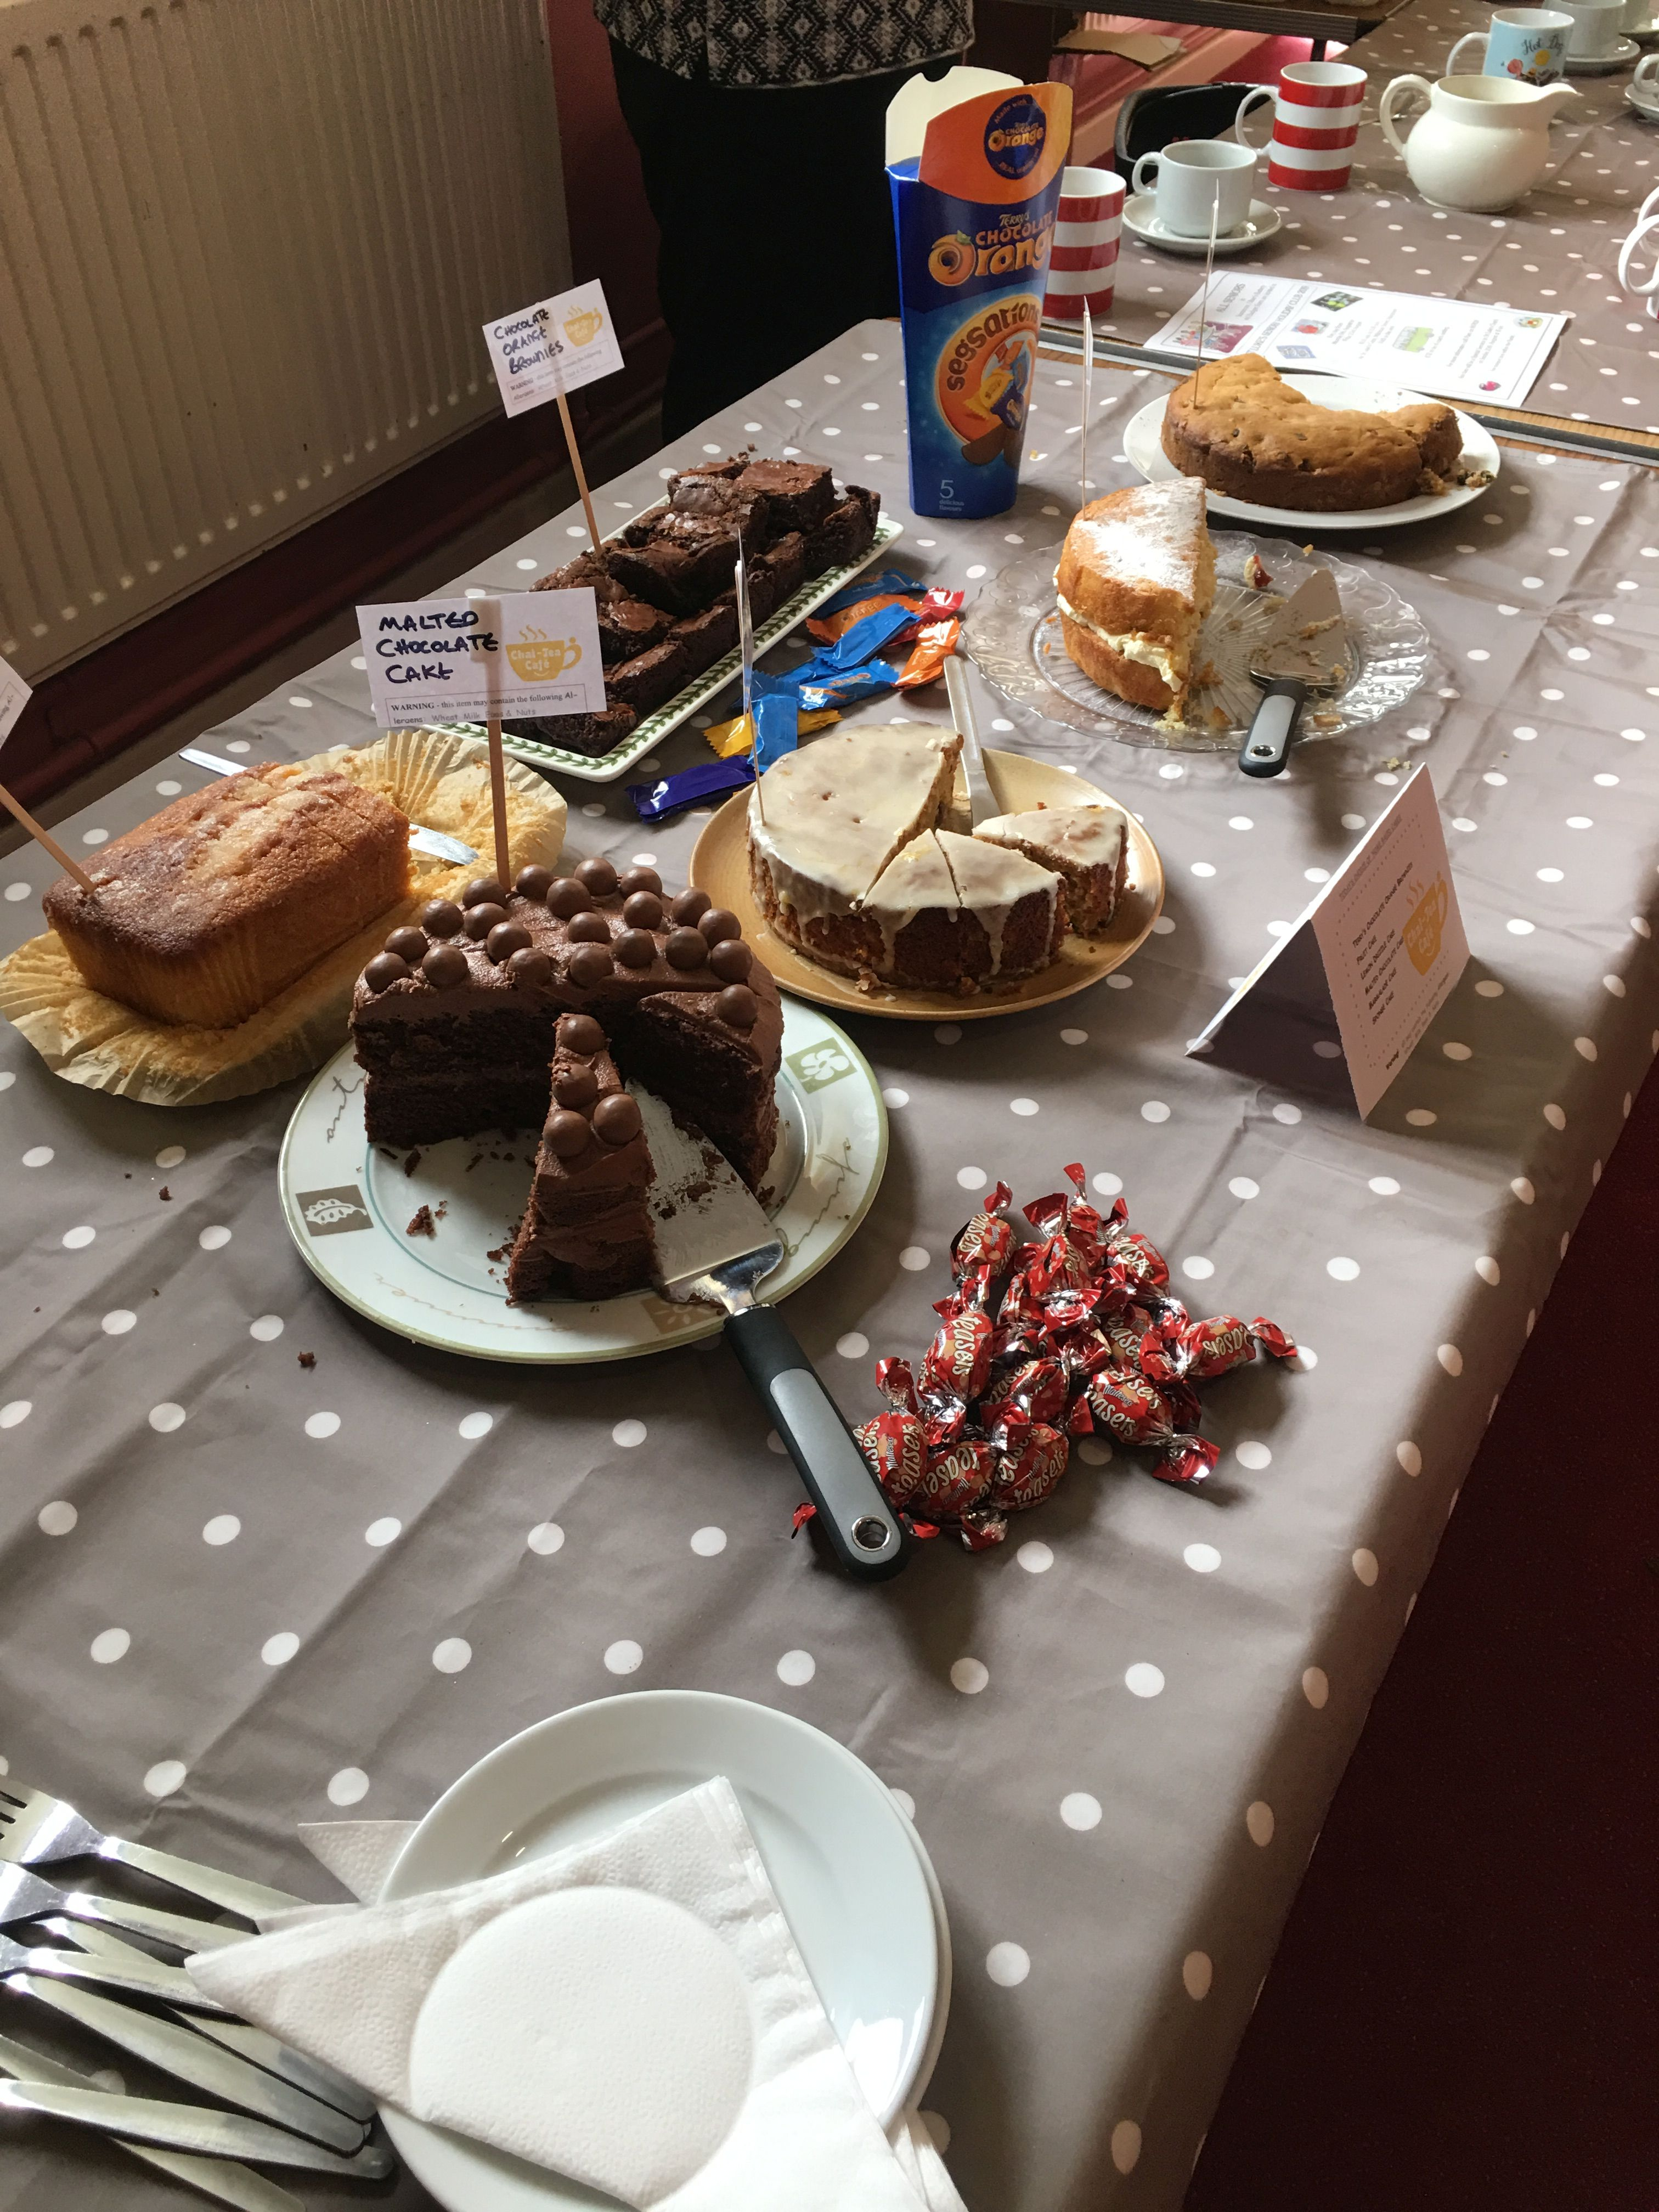 Cakes at the Chat-Tea Café